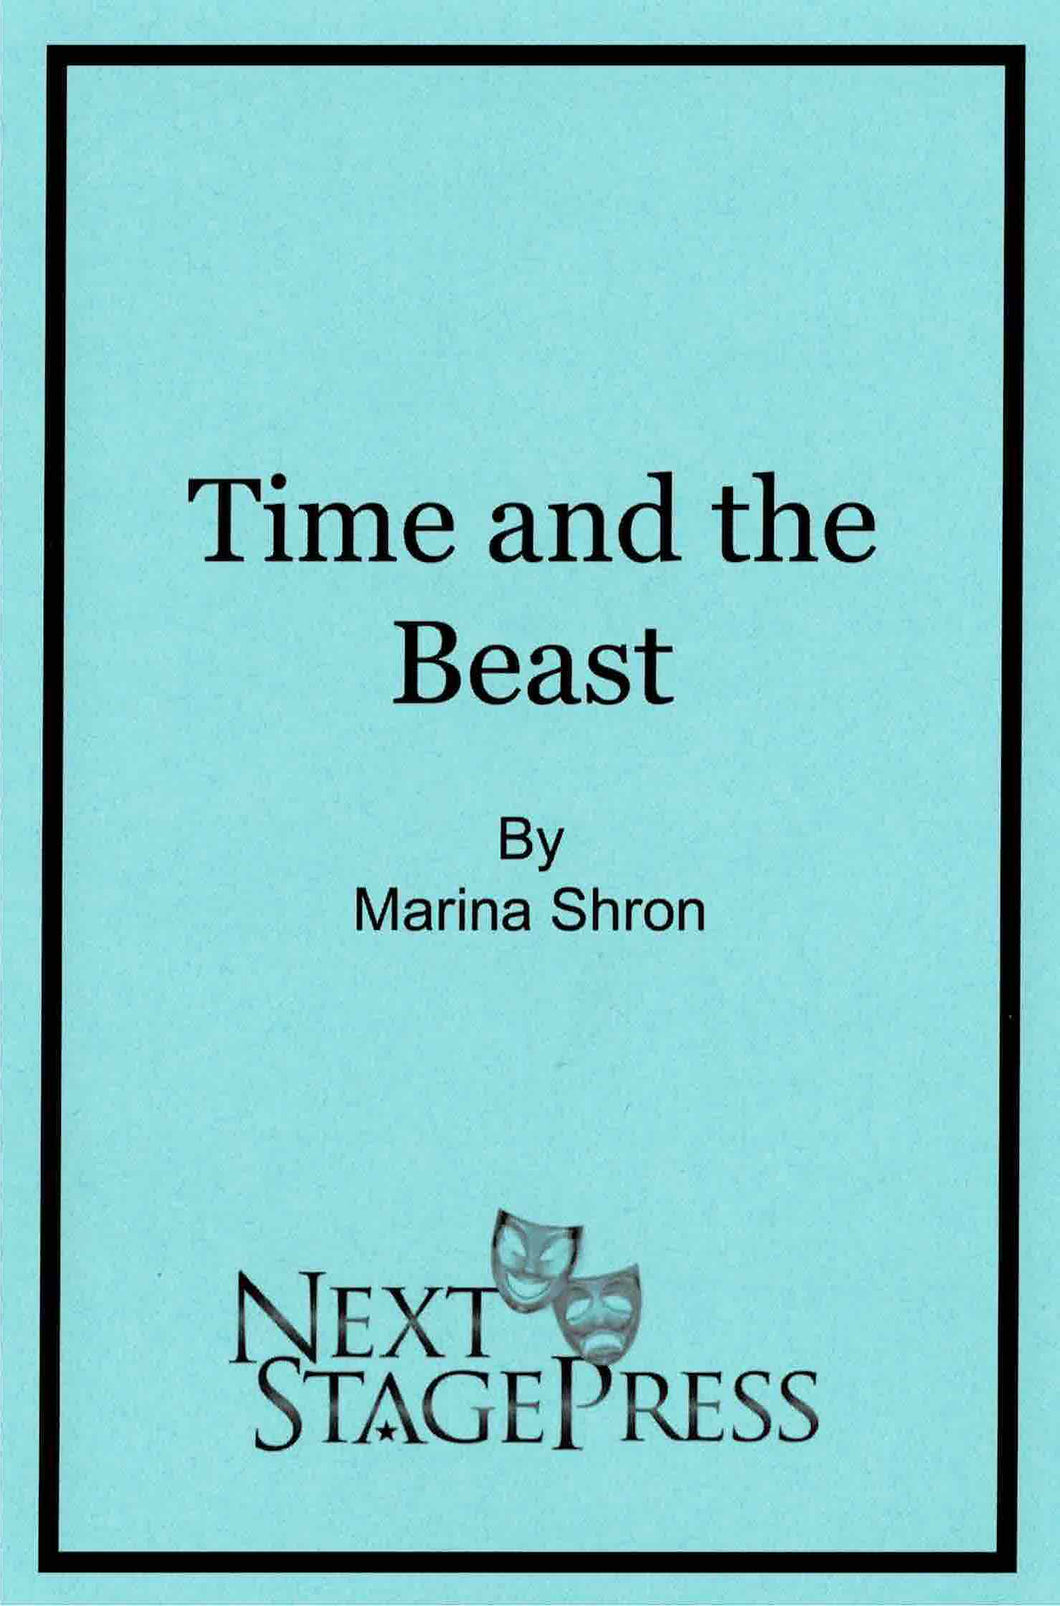 Time and the Beast - Digital Version